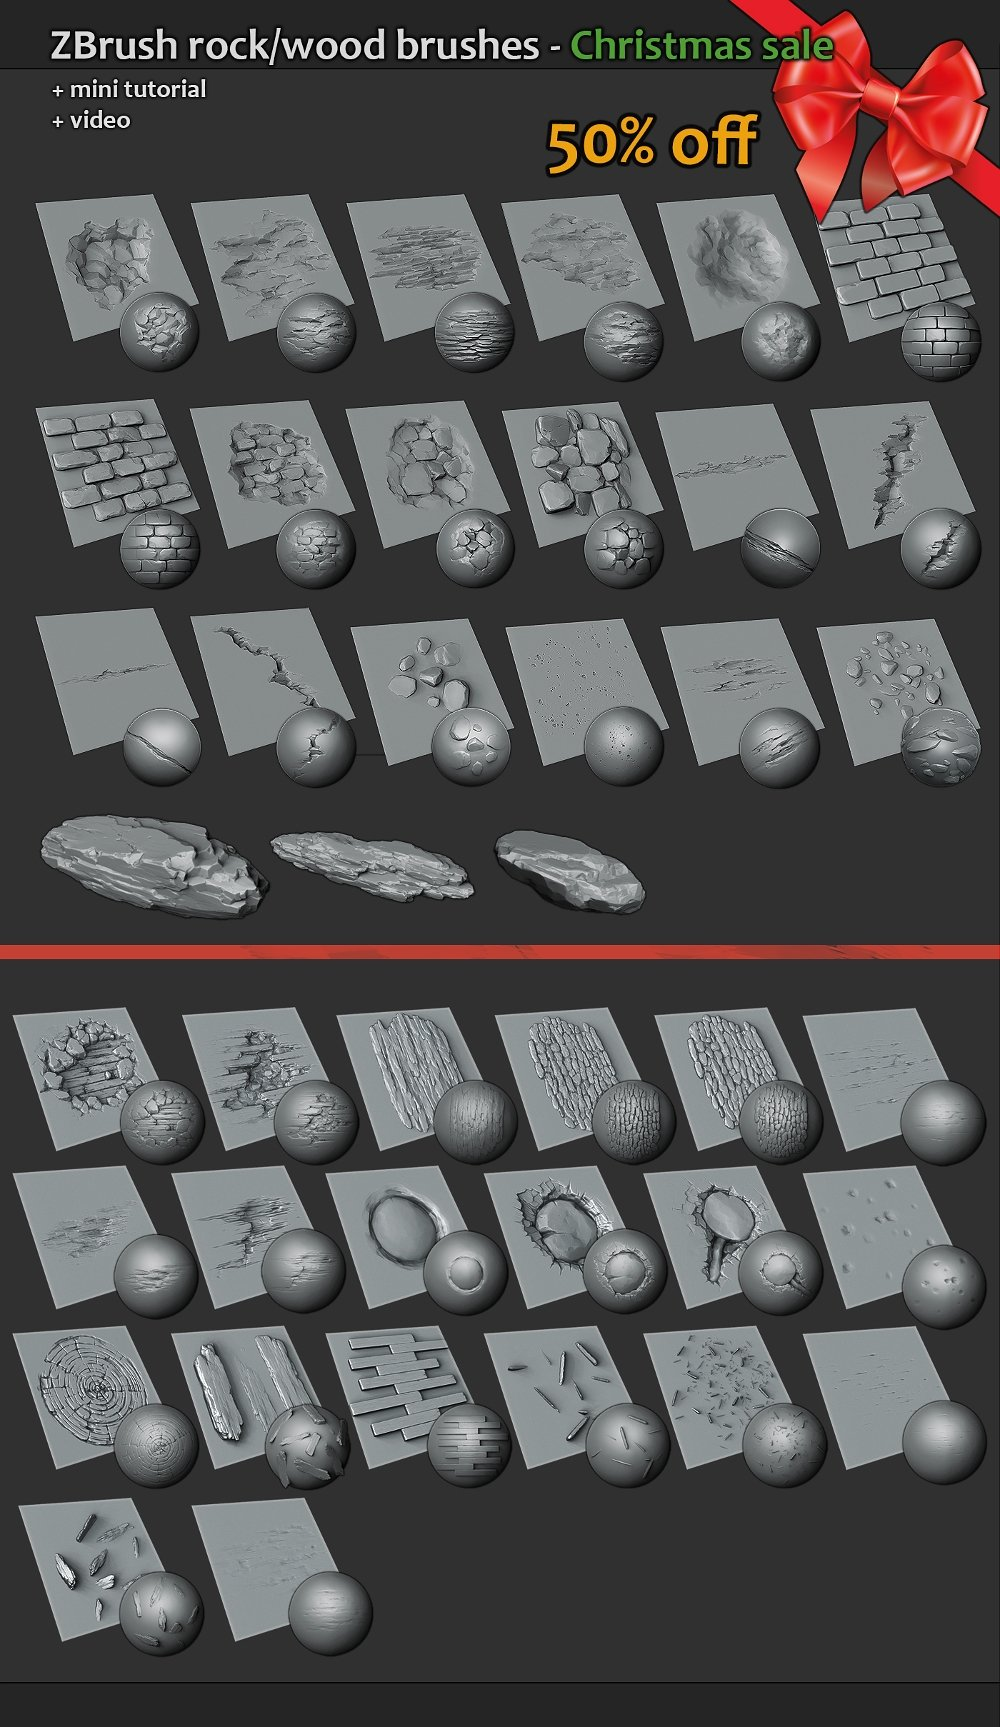 Zbrush Custom Brushes Free Download - xilusbrown